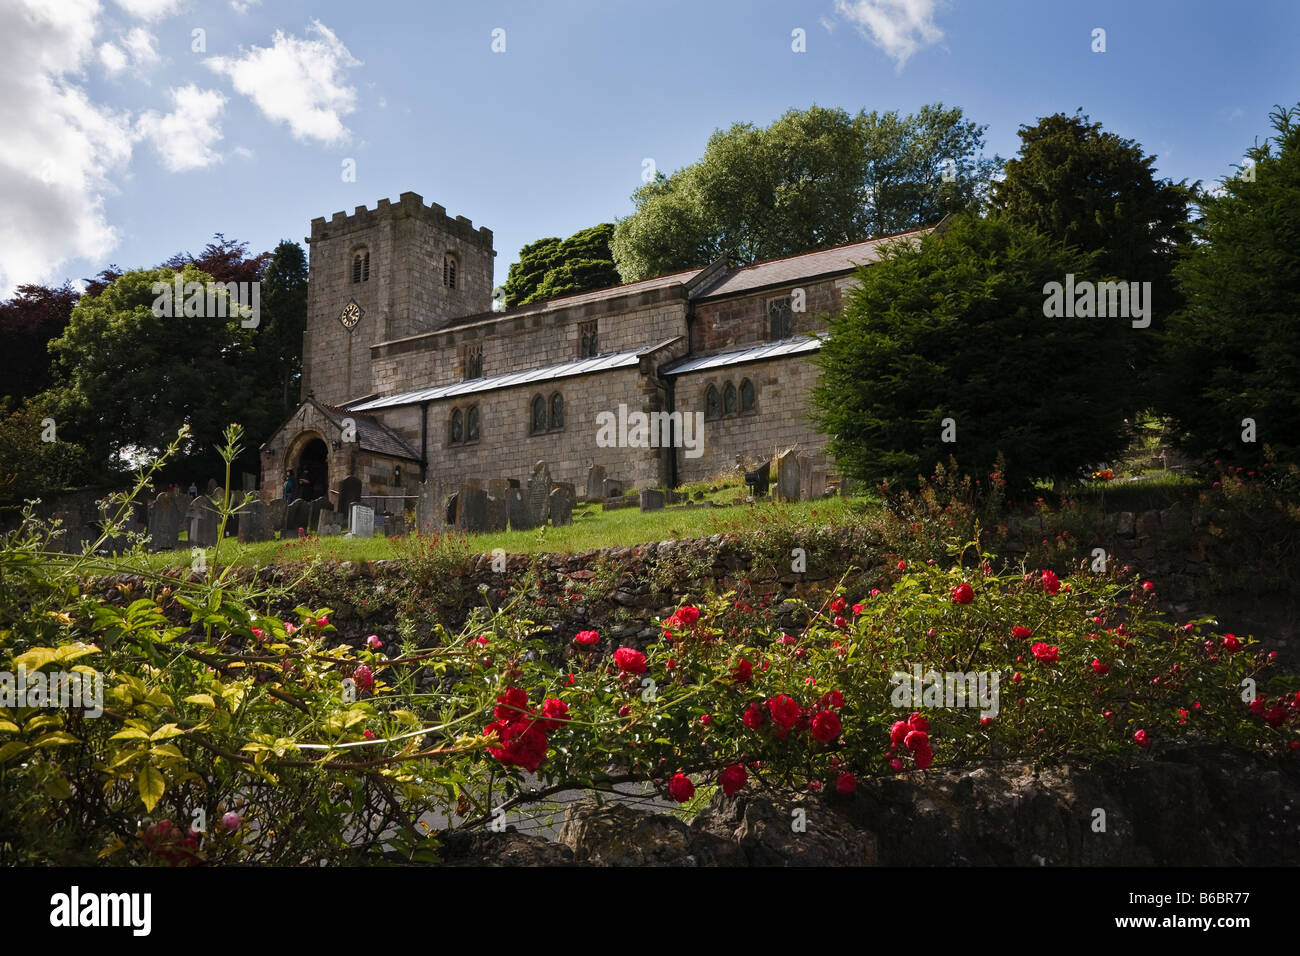 St James Church, Brassington, Peak District, Derbyshire, England, UK - Stock Image